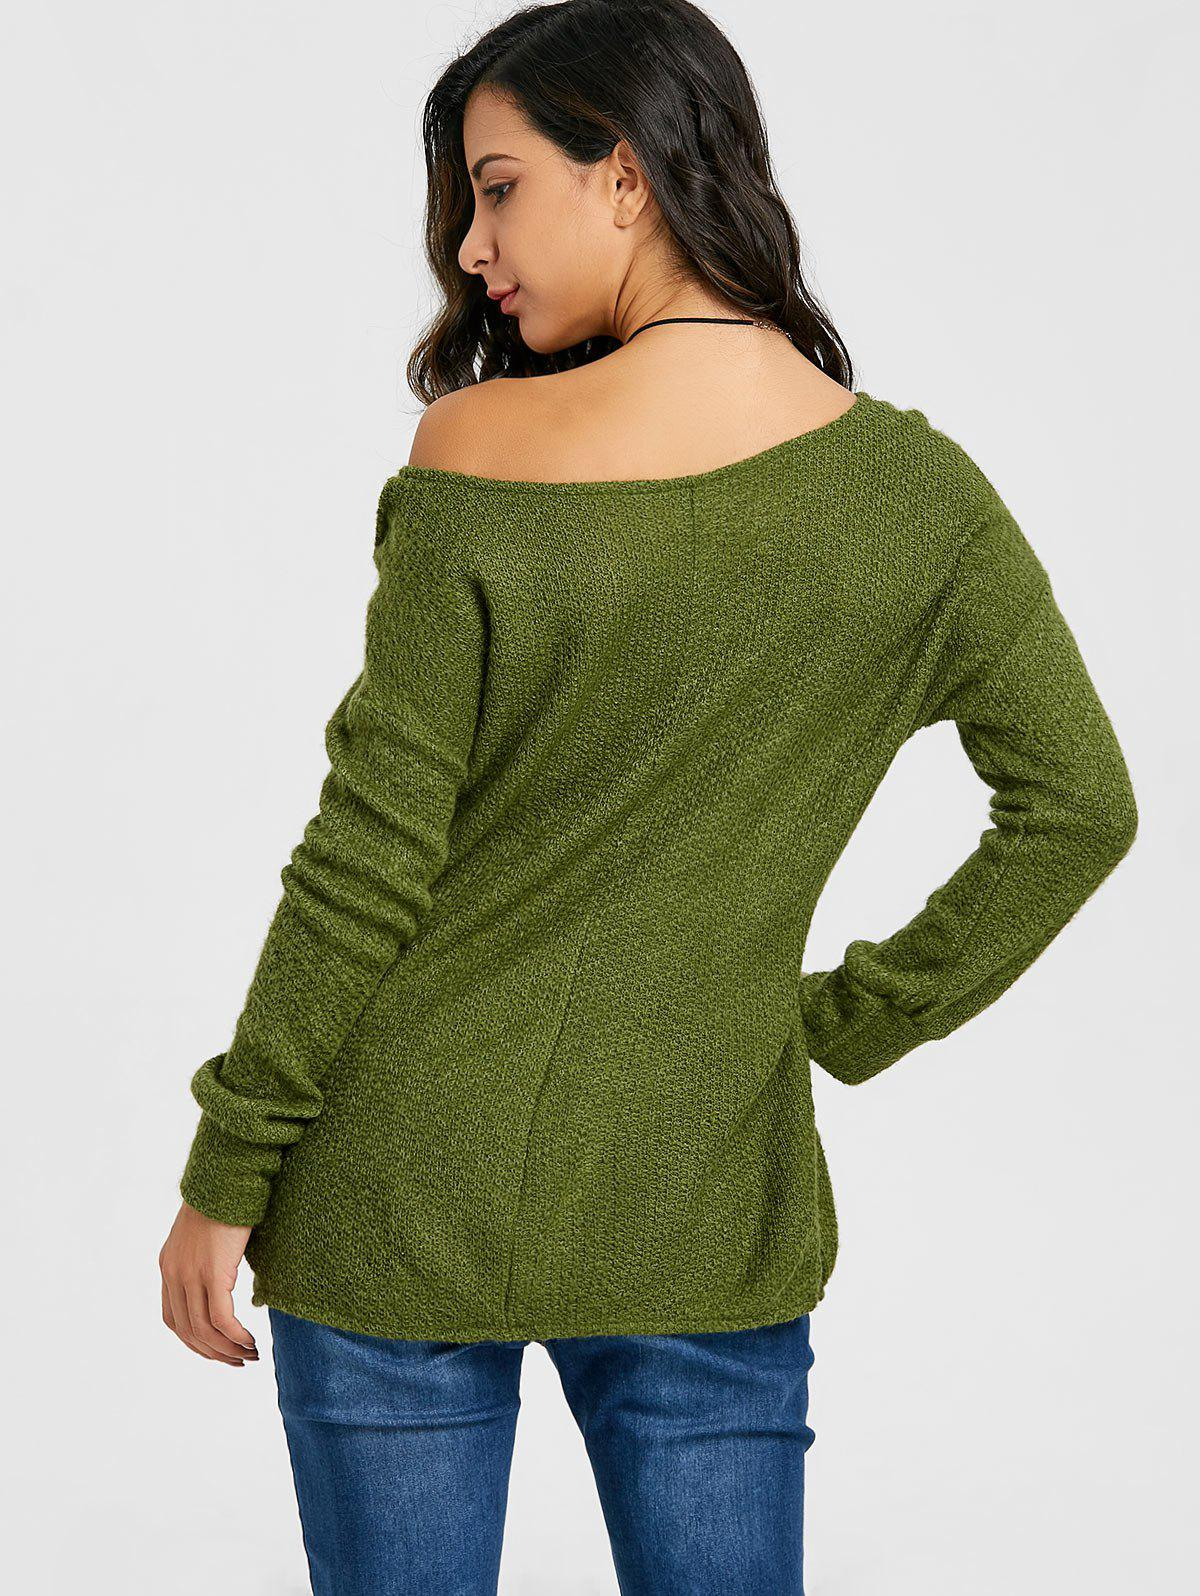 Skew Neck Tunic Knitwear - ARMY GREEN XL